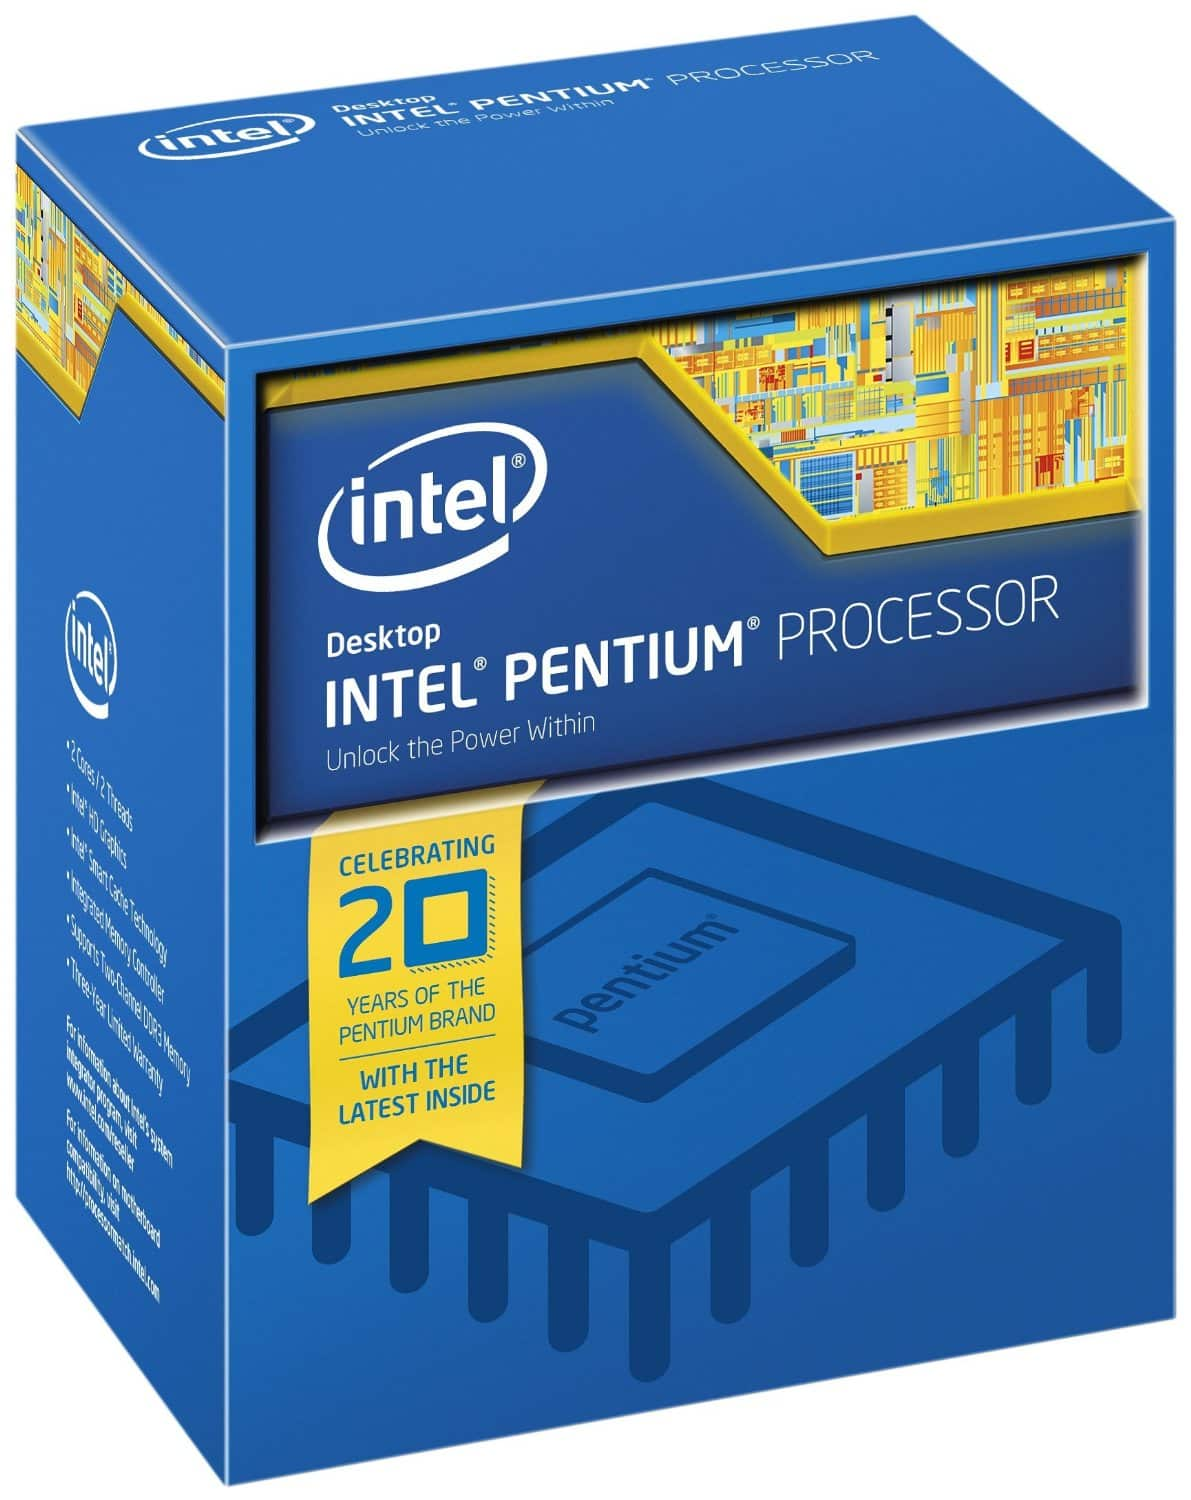 Intel Pentium Unlocked G3258 Dual-Core Processor  $49 + Free Shipping